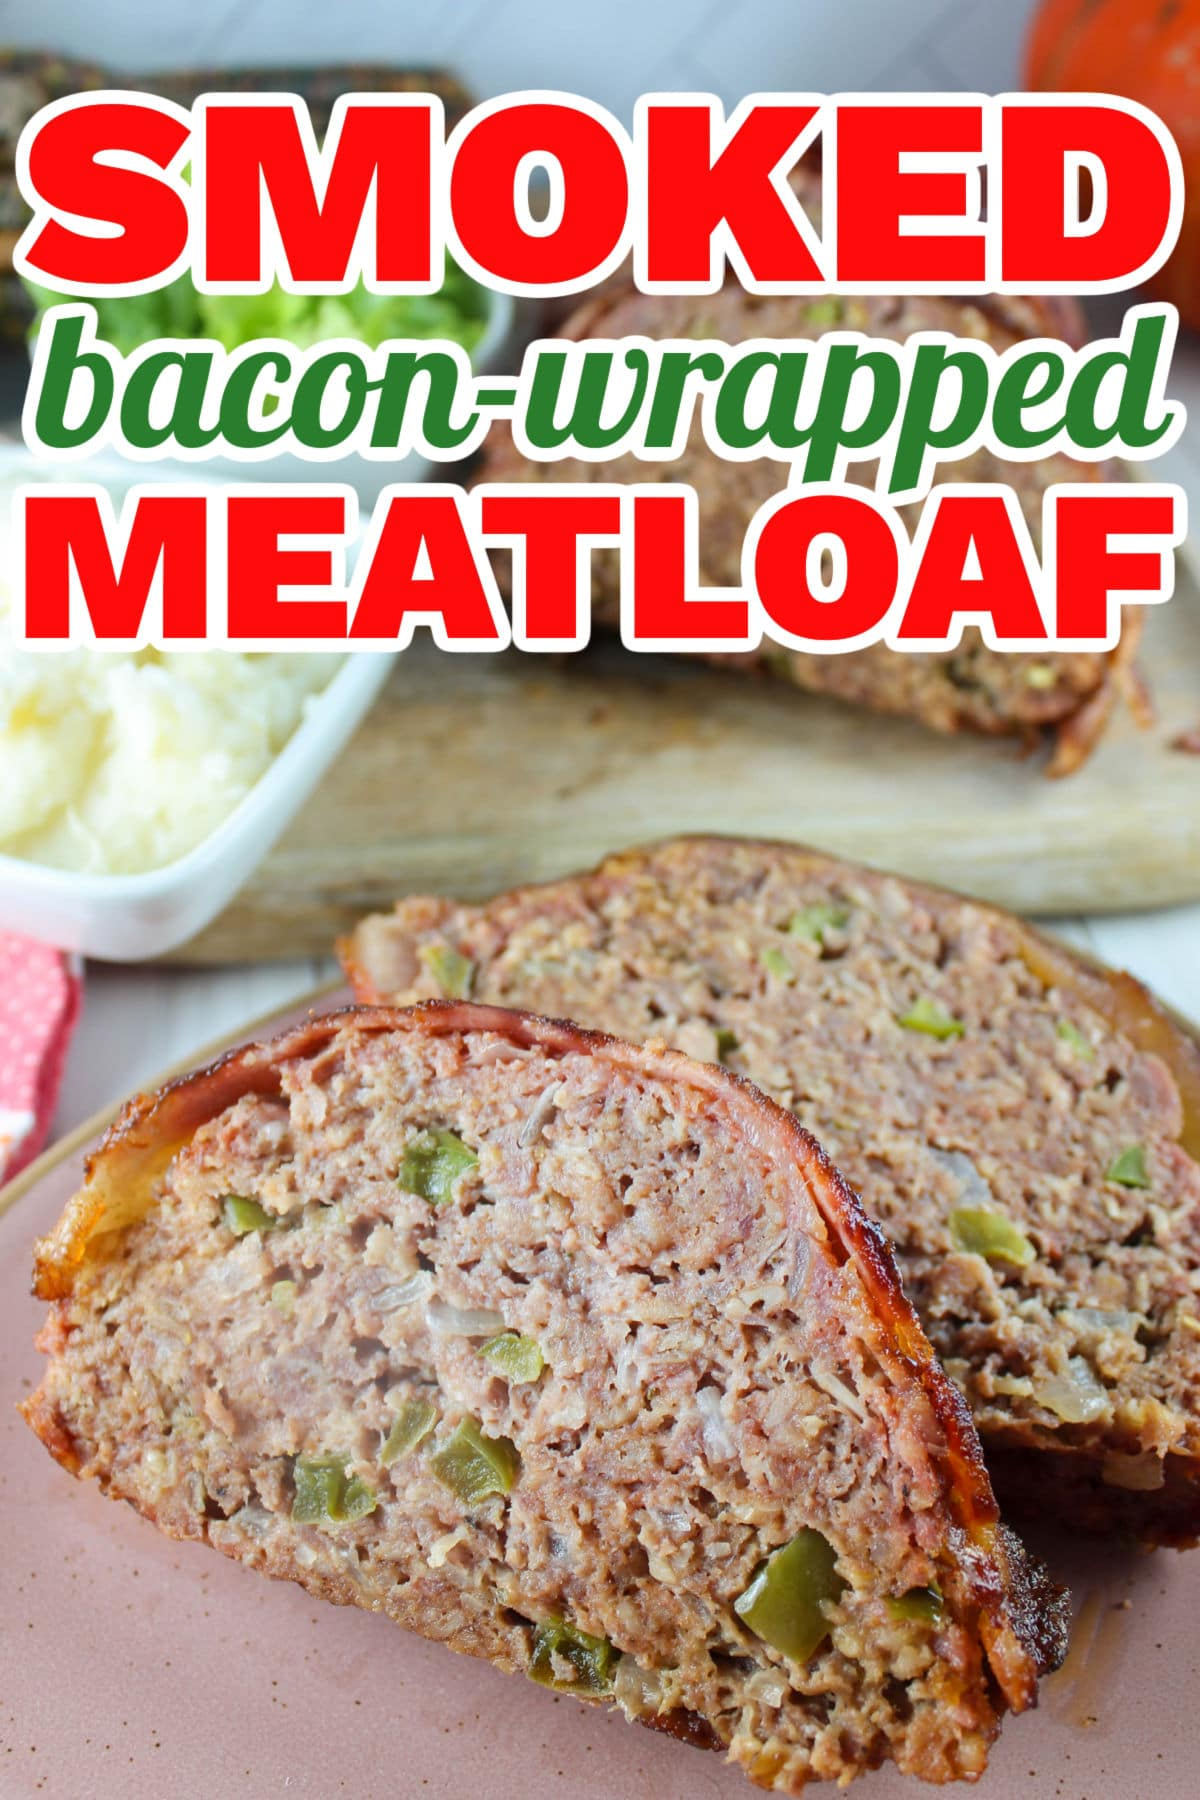 This Traeger Smoked Bacon-Wrapped Meatloaf is not your mommas meatloaf! It's juicy, smoky and there's no ketchup in sight! As with most things on smoker - set aside a couple of hours to make this - but it will be worth it!  via @foodhussy